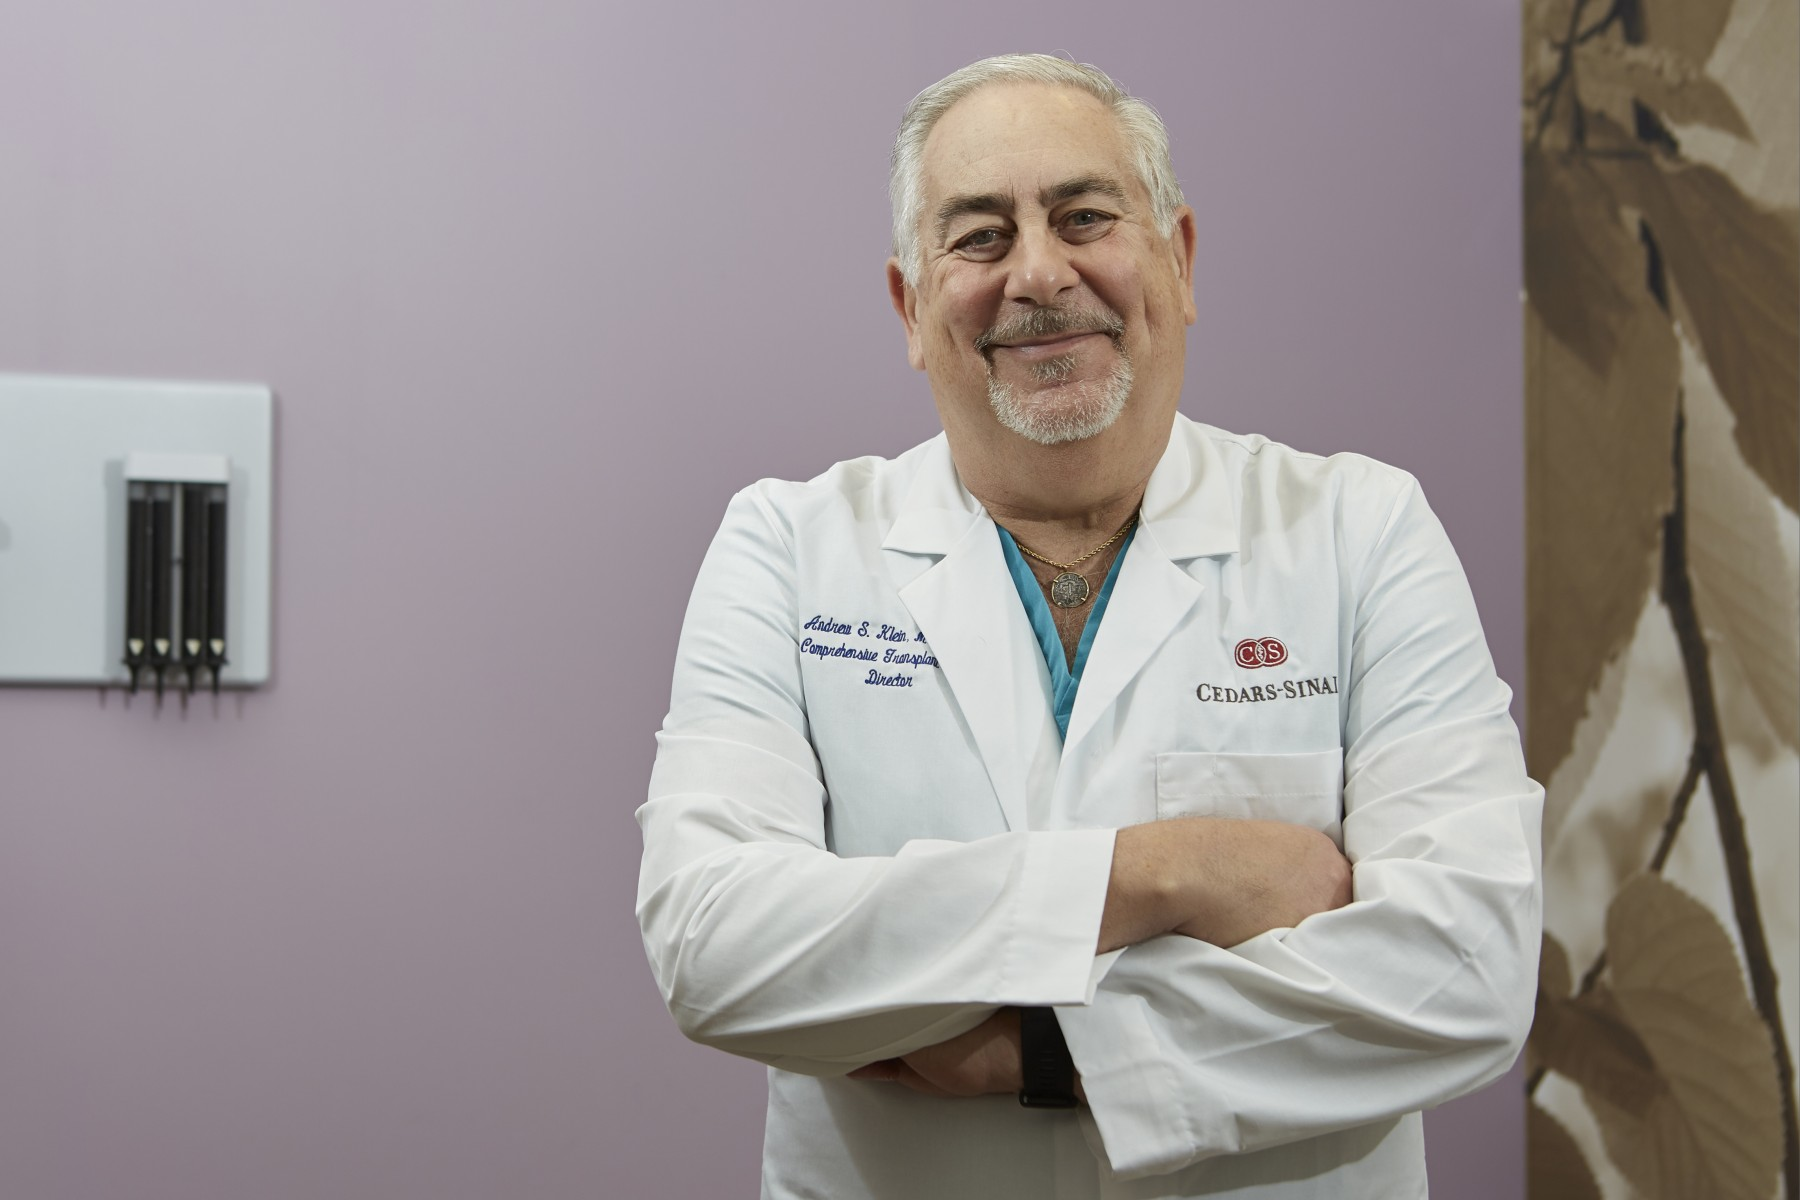 Andrew Klein, MD, MBA, is the 2019 president of the International College of Surgeons, U.S. Section. Photo by Cedars-Sinai.